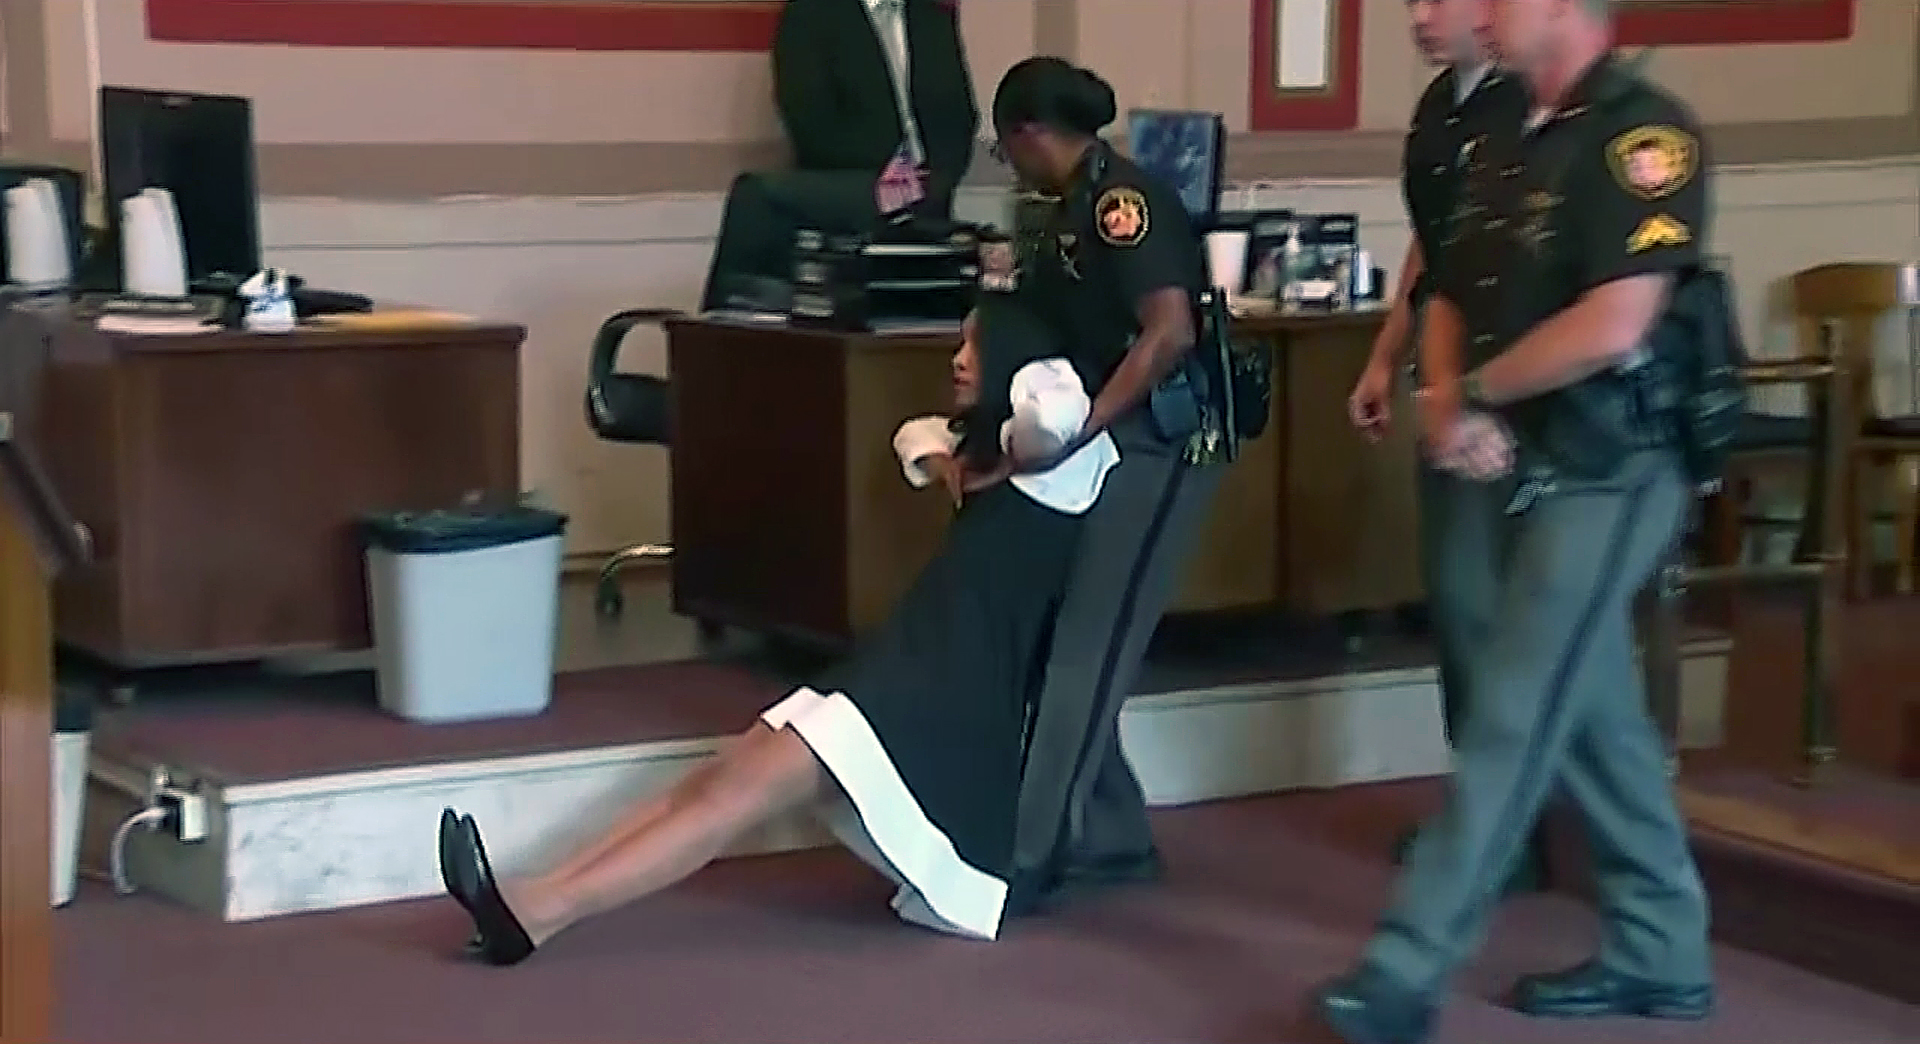 Courtroom chaos: Video shows judge dragged away after her